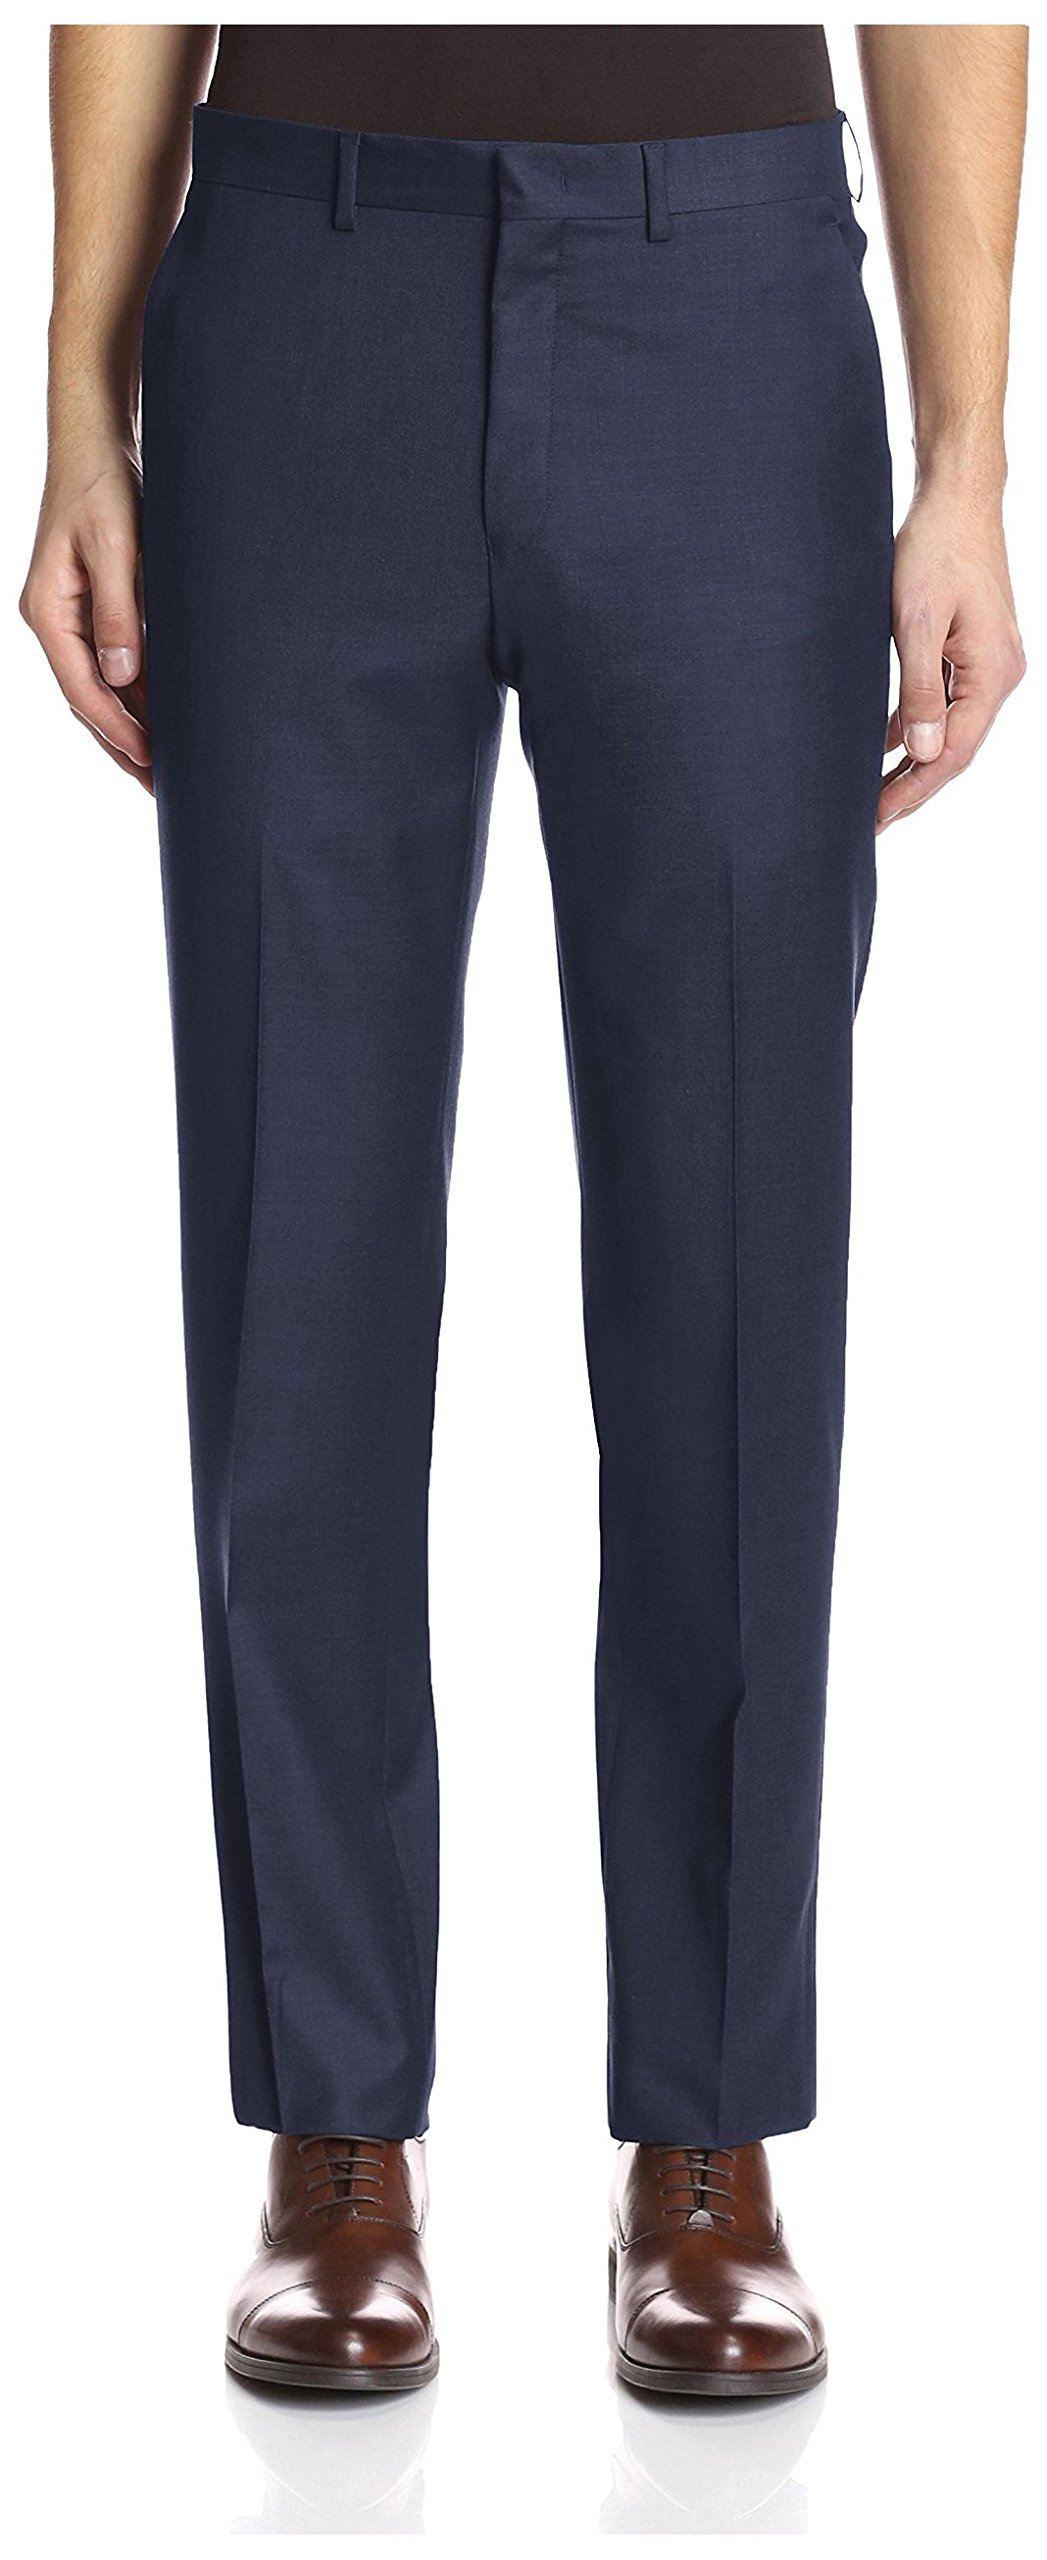 Franklin Tailored Men's Solid Trousers, Navy, 38 US